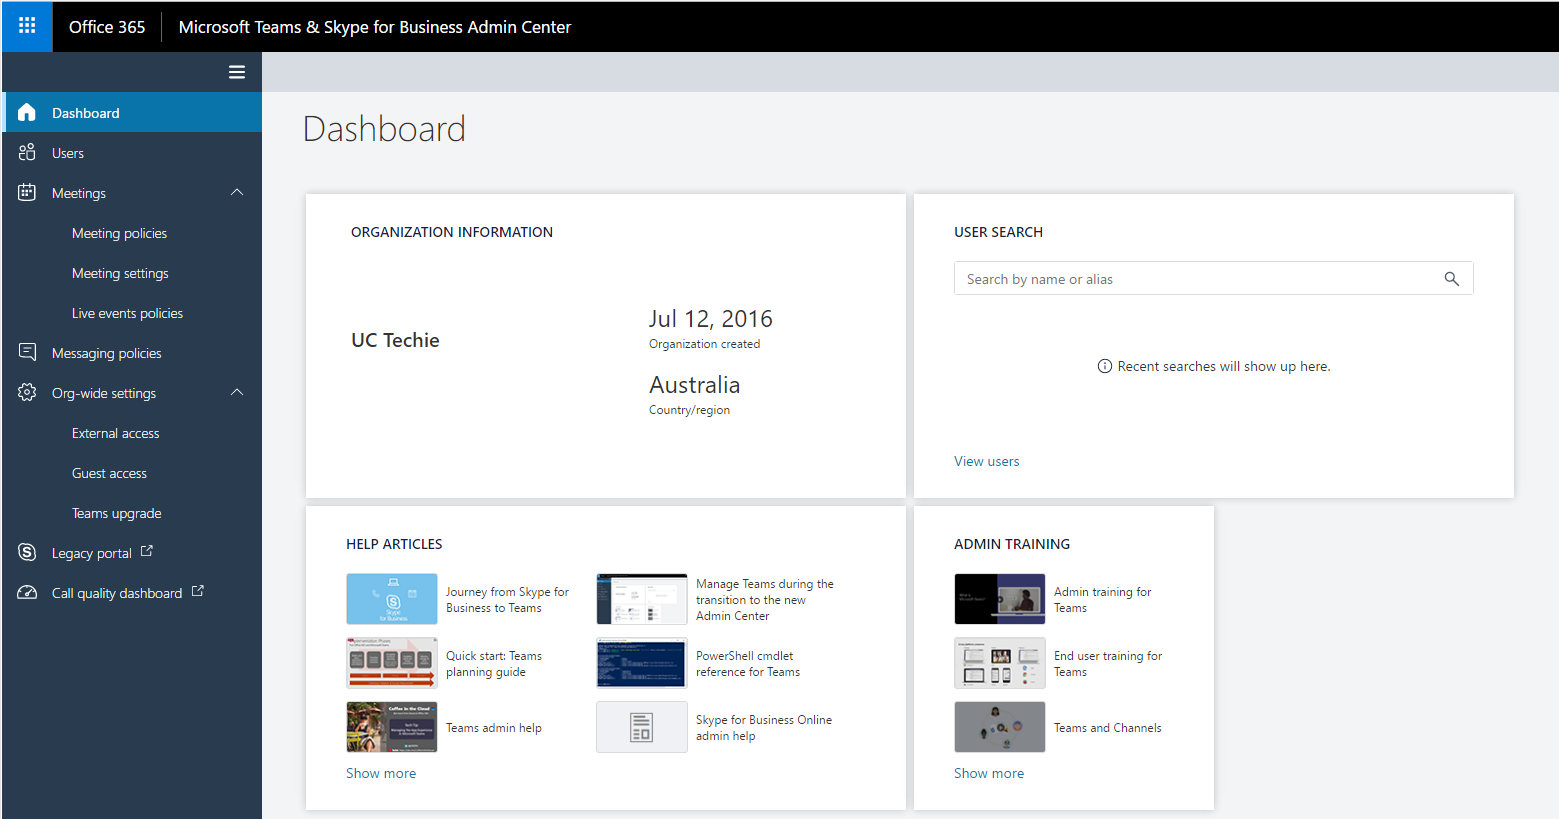 Microsoft Teams & Skype for Business Admin Center | The UC Techie